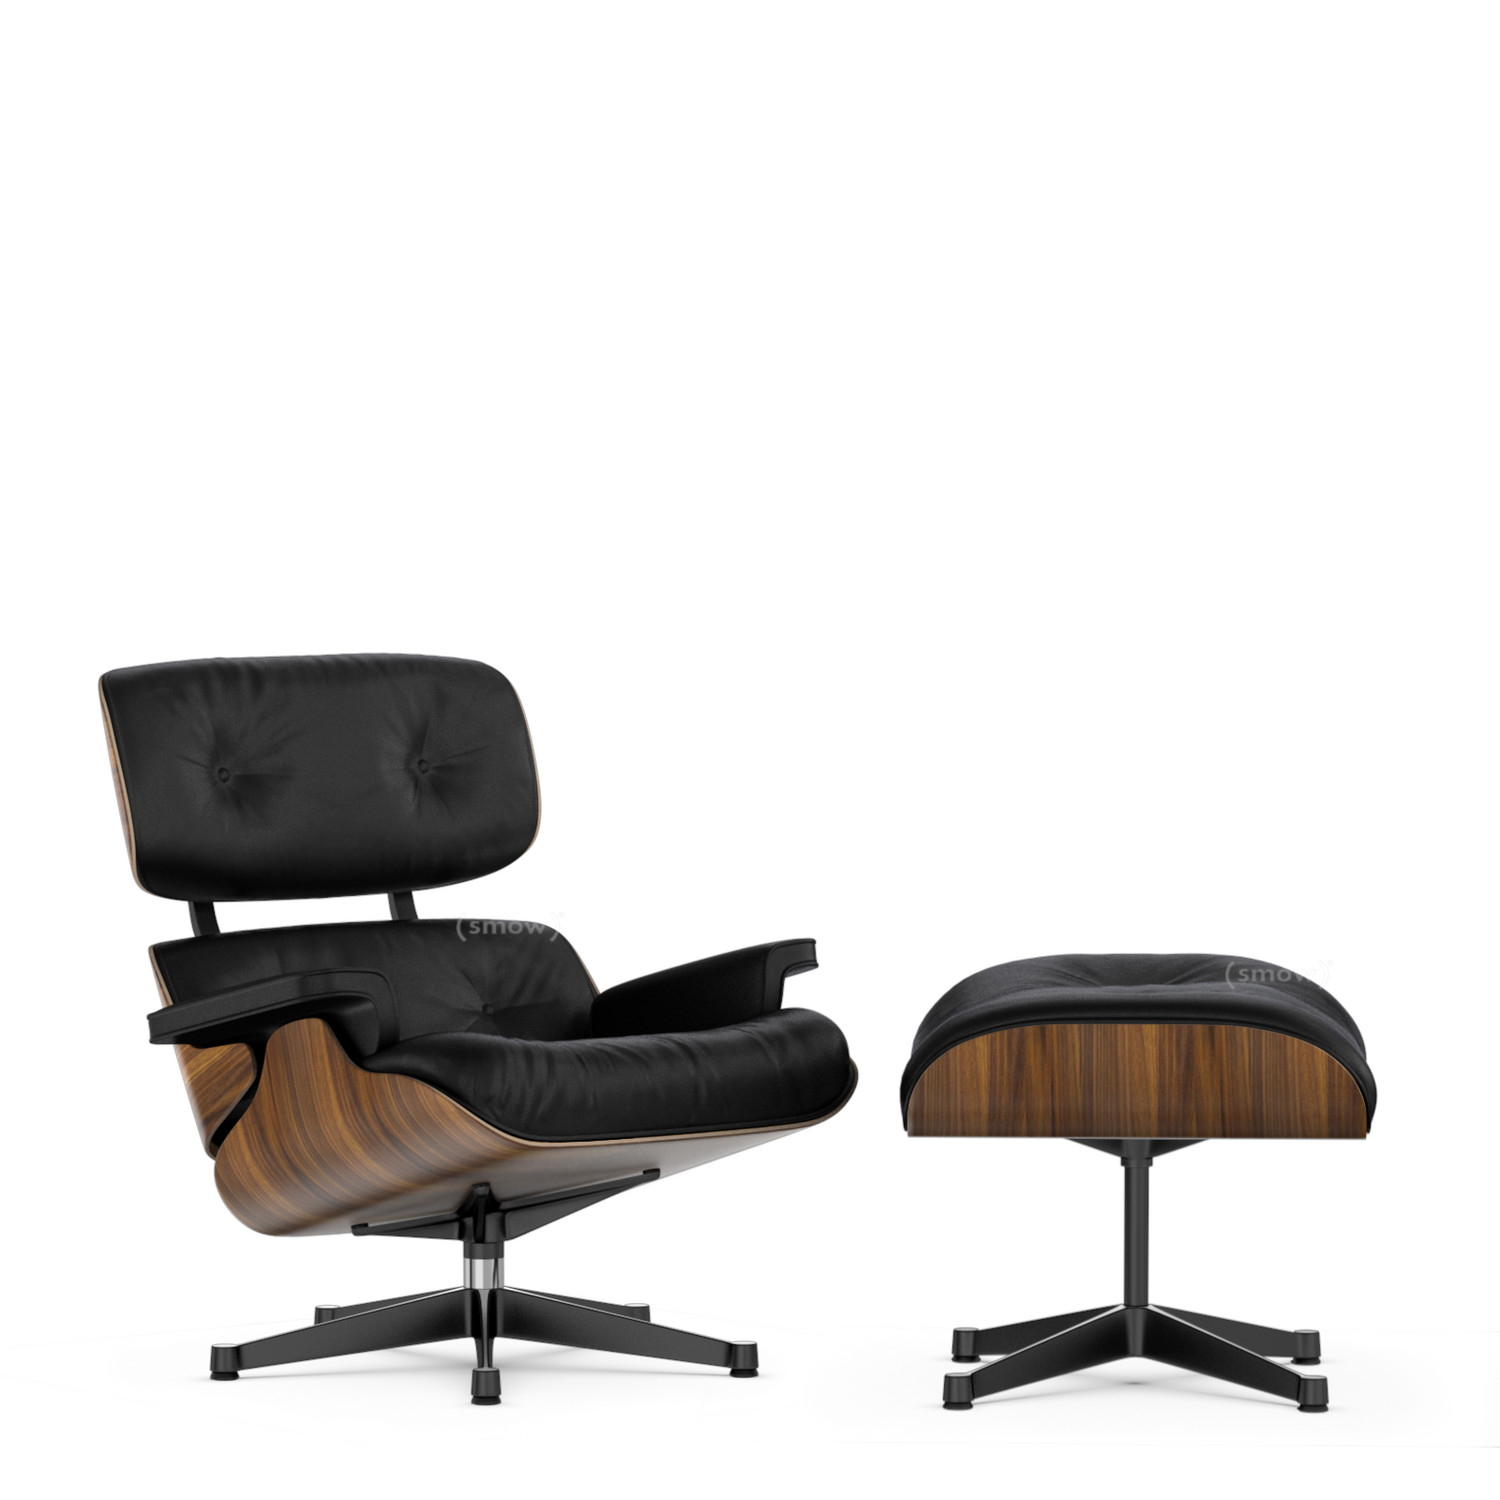 Vitra lounge chair ottoman by charles ray eames 1956 for Chaise design eams